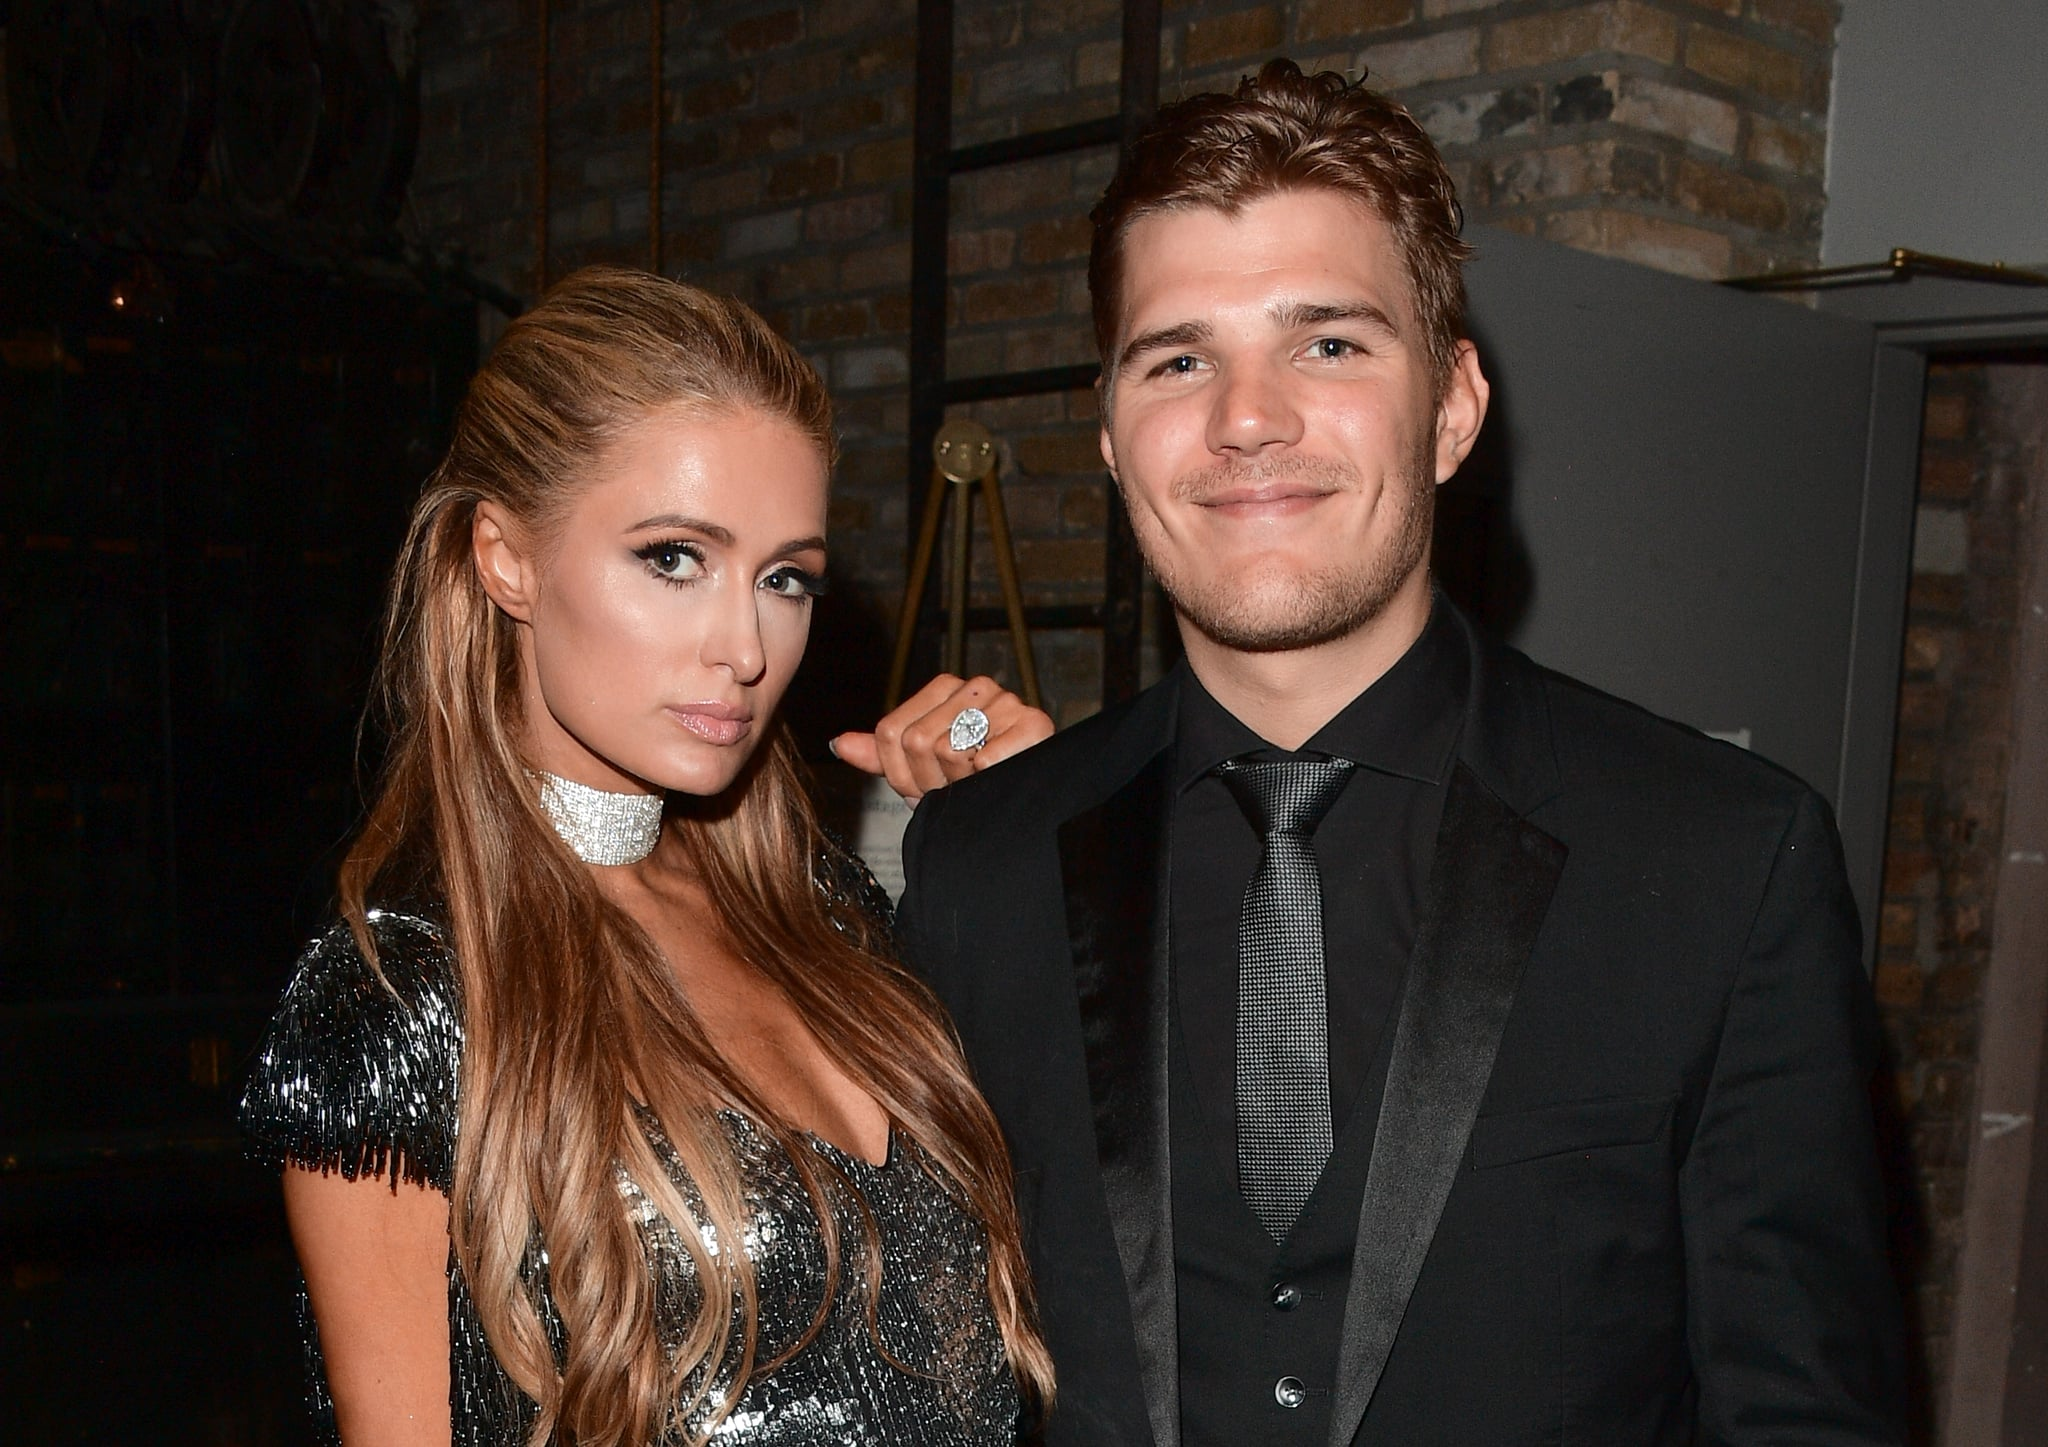 TORONTO, ON - SEPTEMBER 10: Paris Hilton (L) and Chris Zylka attend the